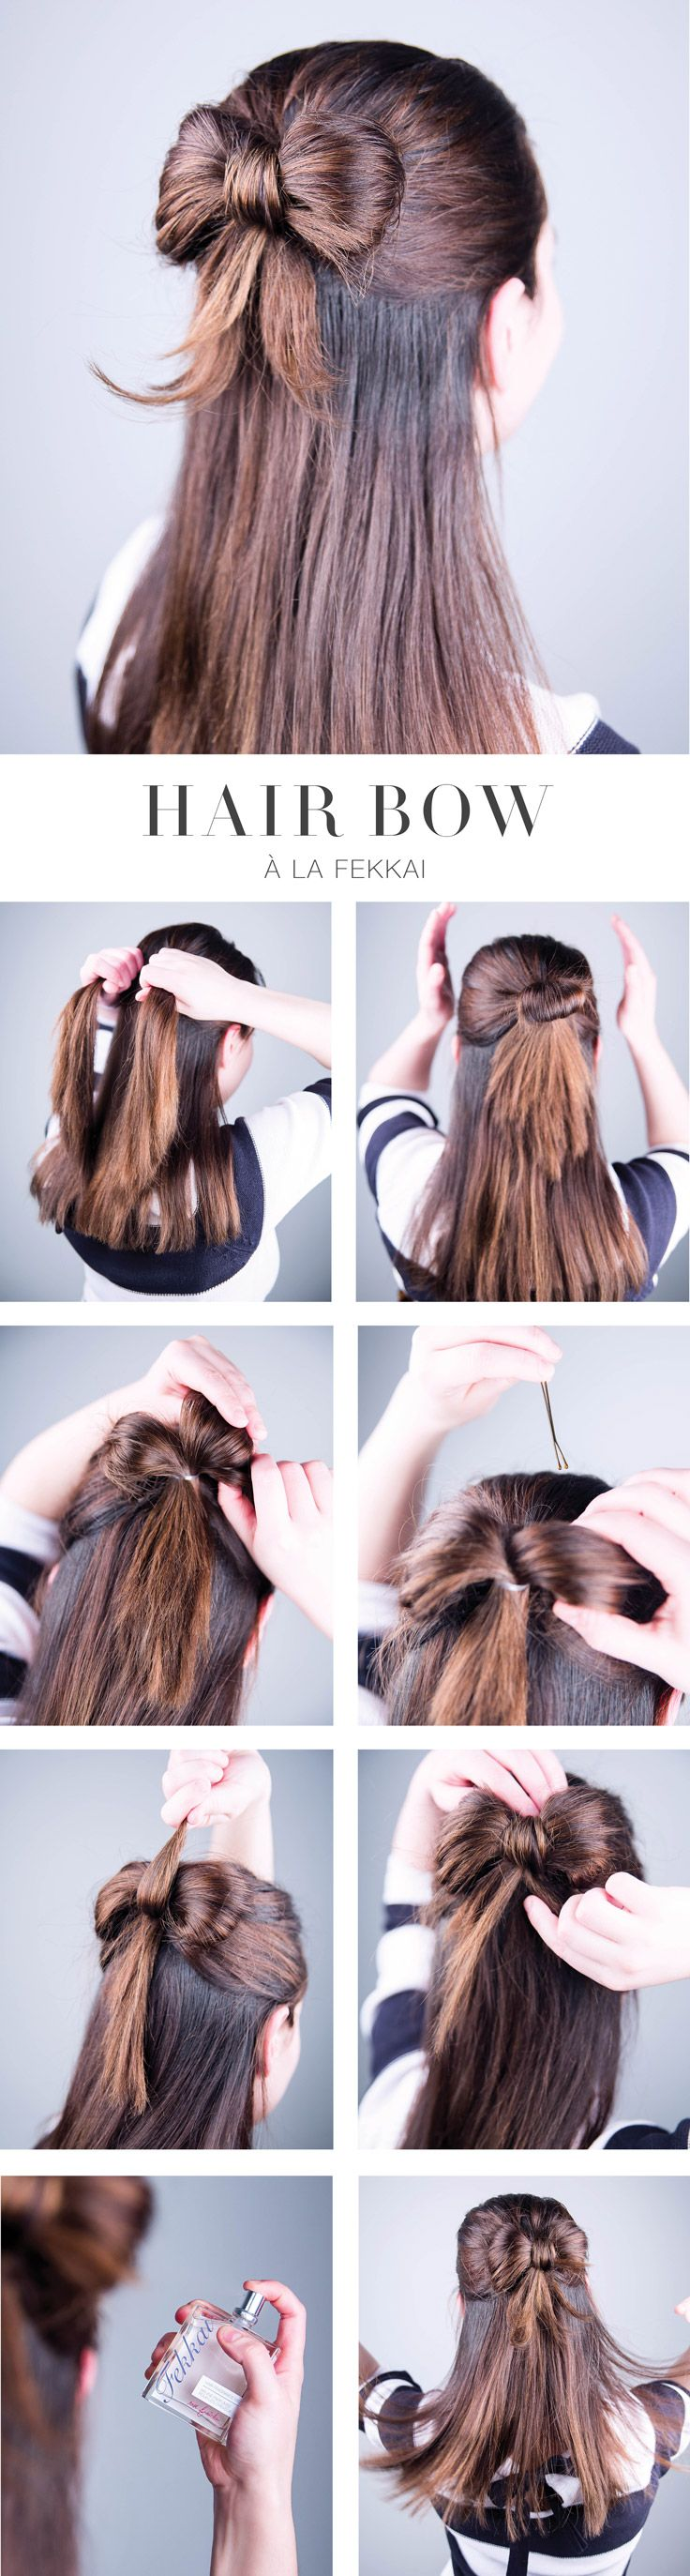 "Hair Bow How To: 1. Grab an even section of hair just above your ears. 2. Secure with a hair band, not pulling the hair through completely (creating a small half-bun). 3. Section the bun down the middle— these will be your bows. Fluff ""bow"" apart with your hands + secure to inside with a bobby pin. Repeat with other side. 4. Grab some of the remaining hair underneath your ""bows"" and tuck into a small hole you create at the crown of your head; bobby pin to secure. 5. Flip out the remaining…"